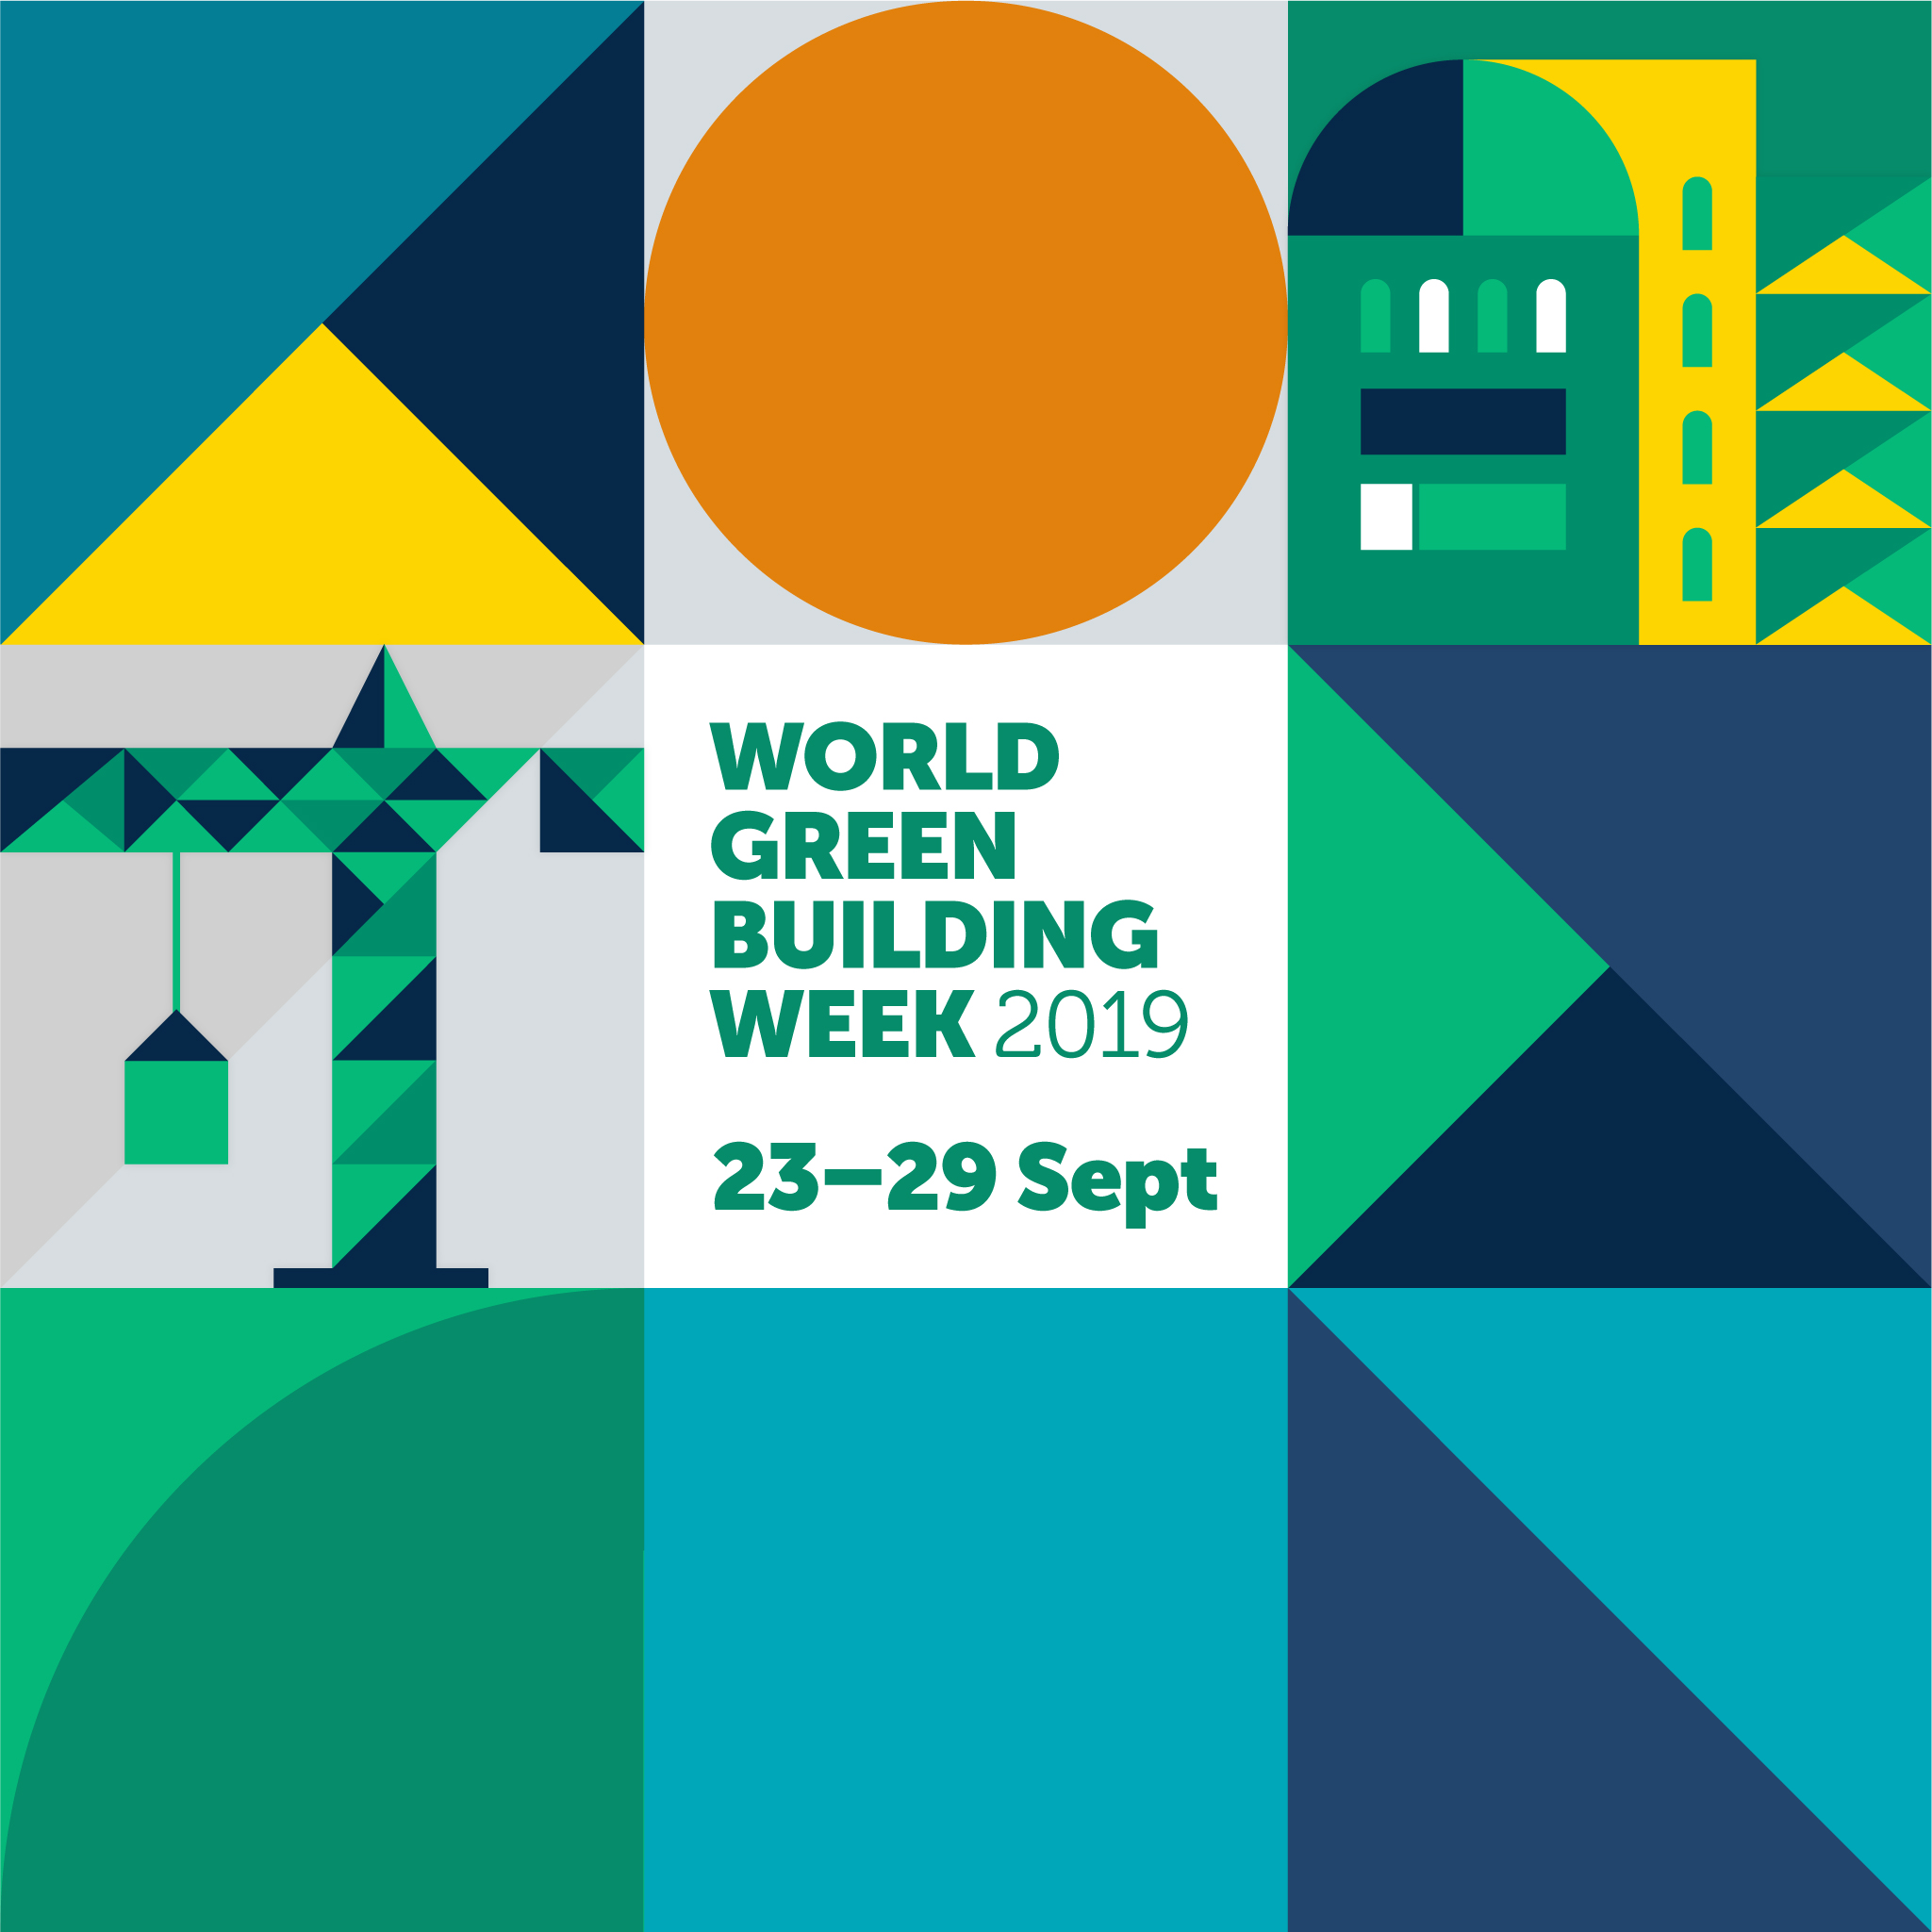 World Green Building Week 2019